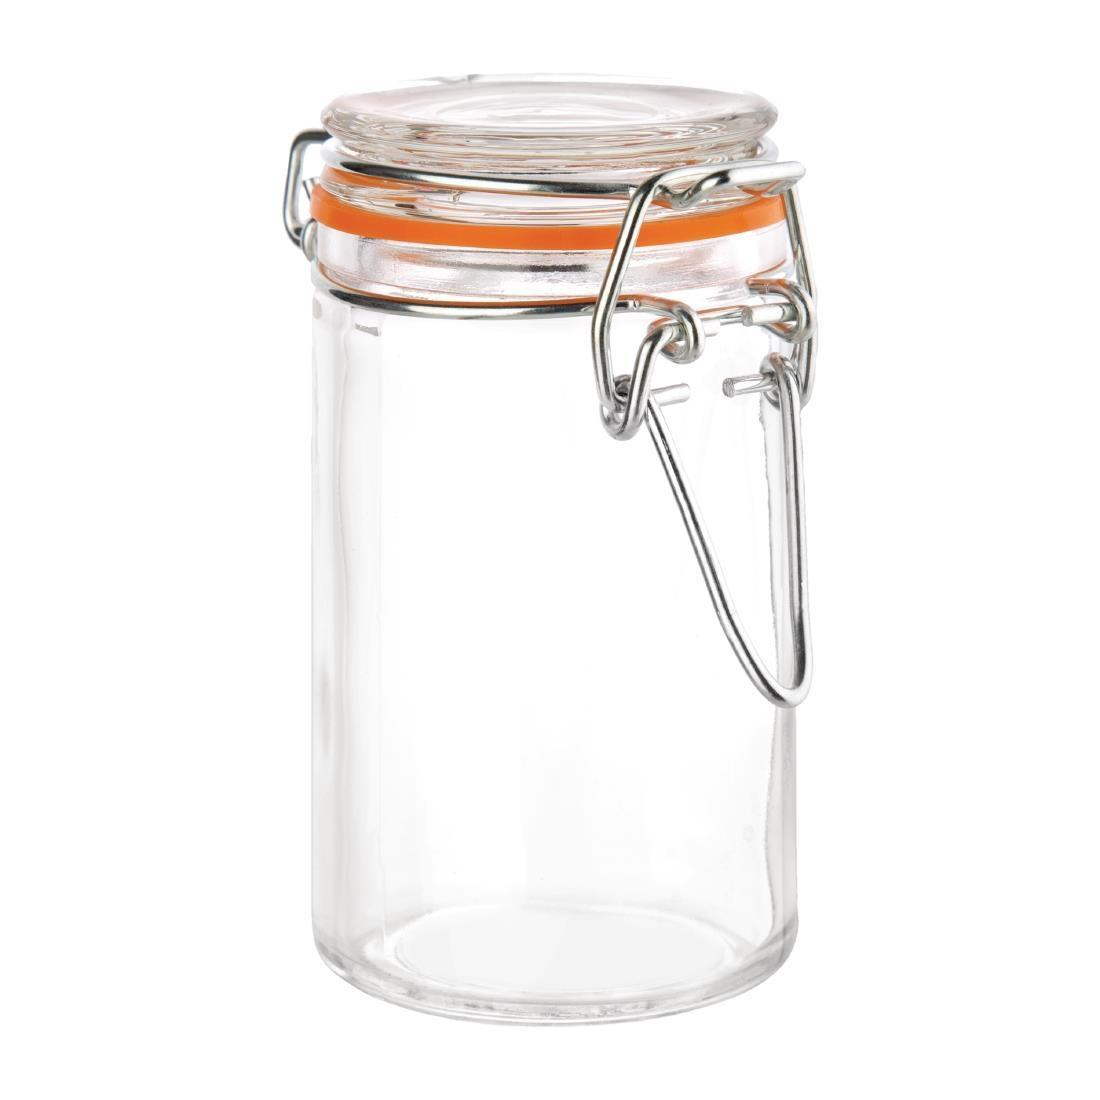 Vogue Mini Glass Terrine Jar 70ml - Case 12 - CG399